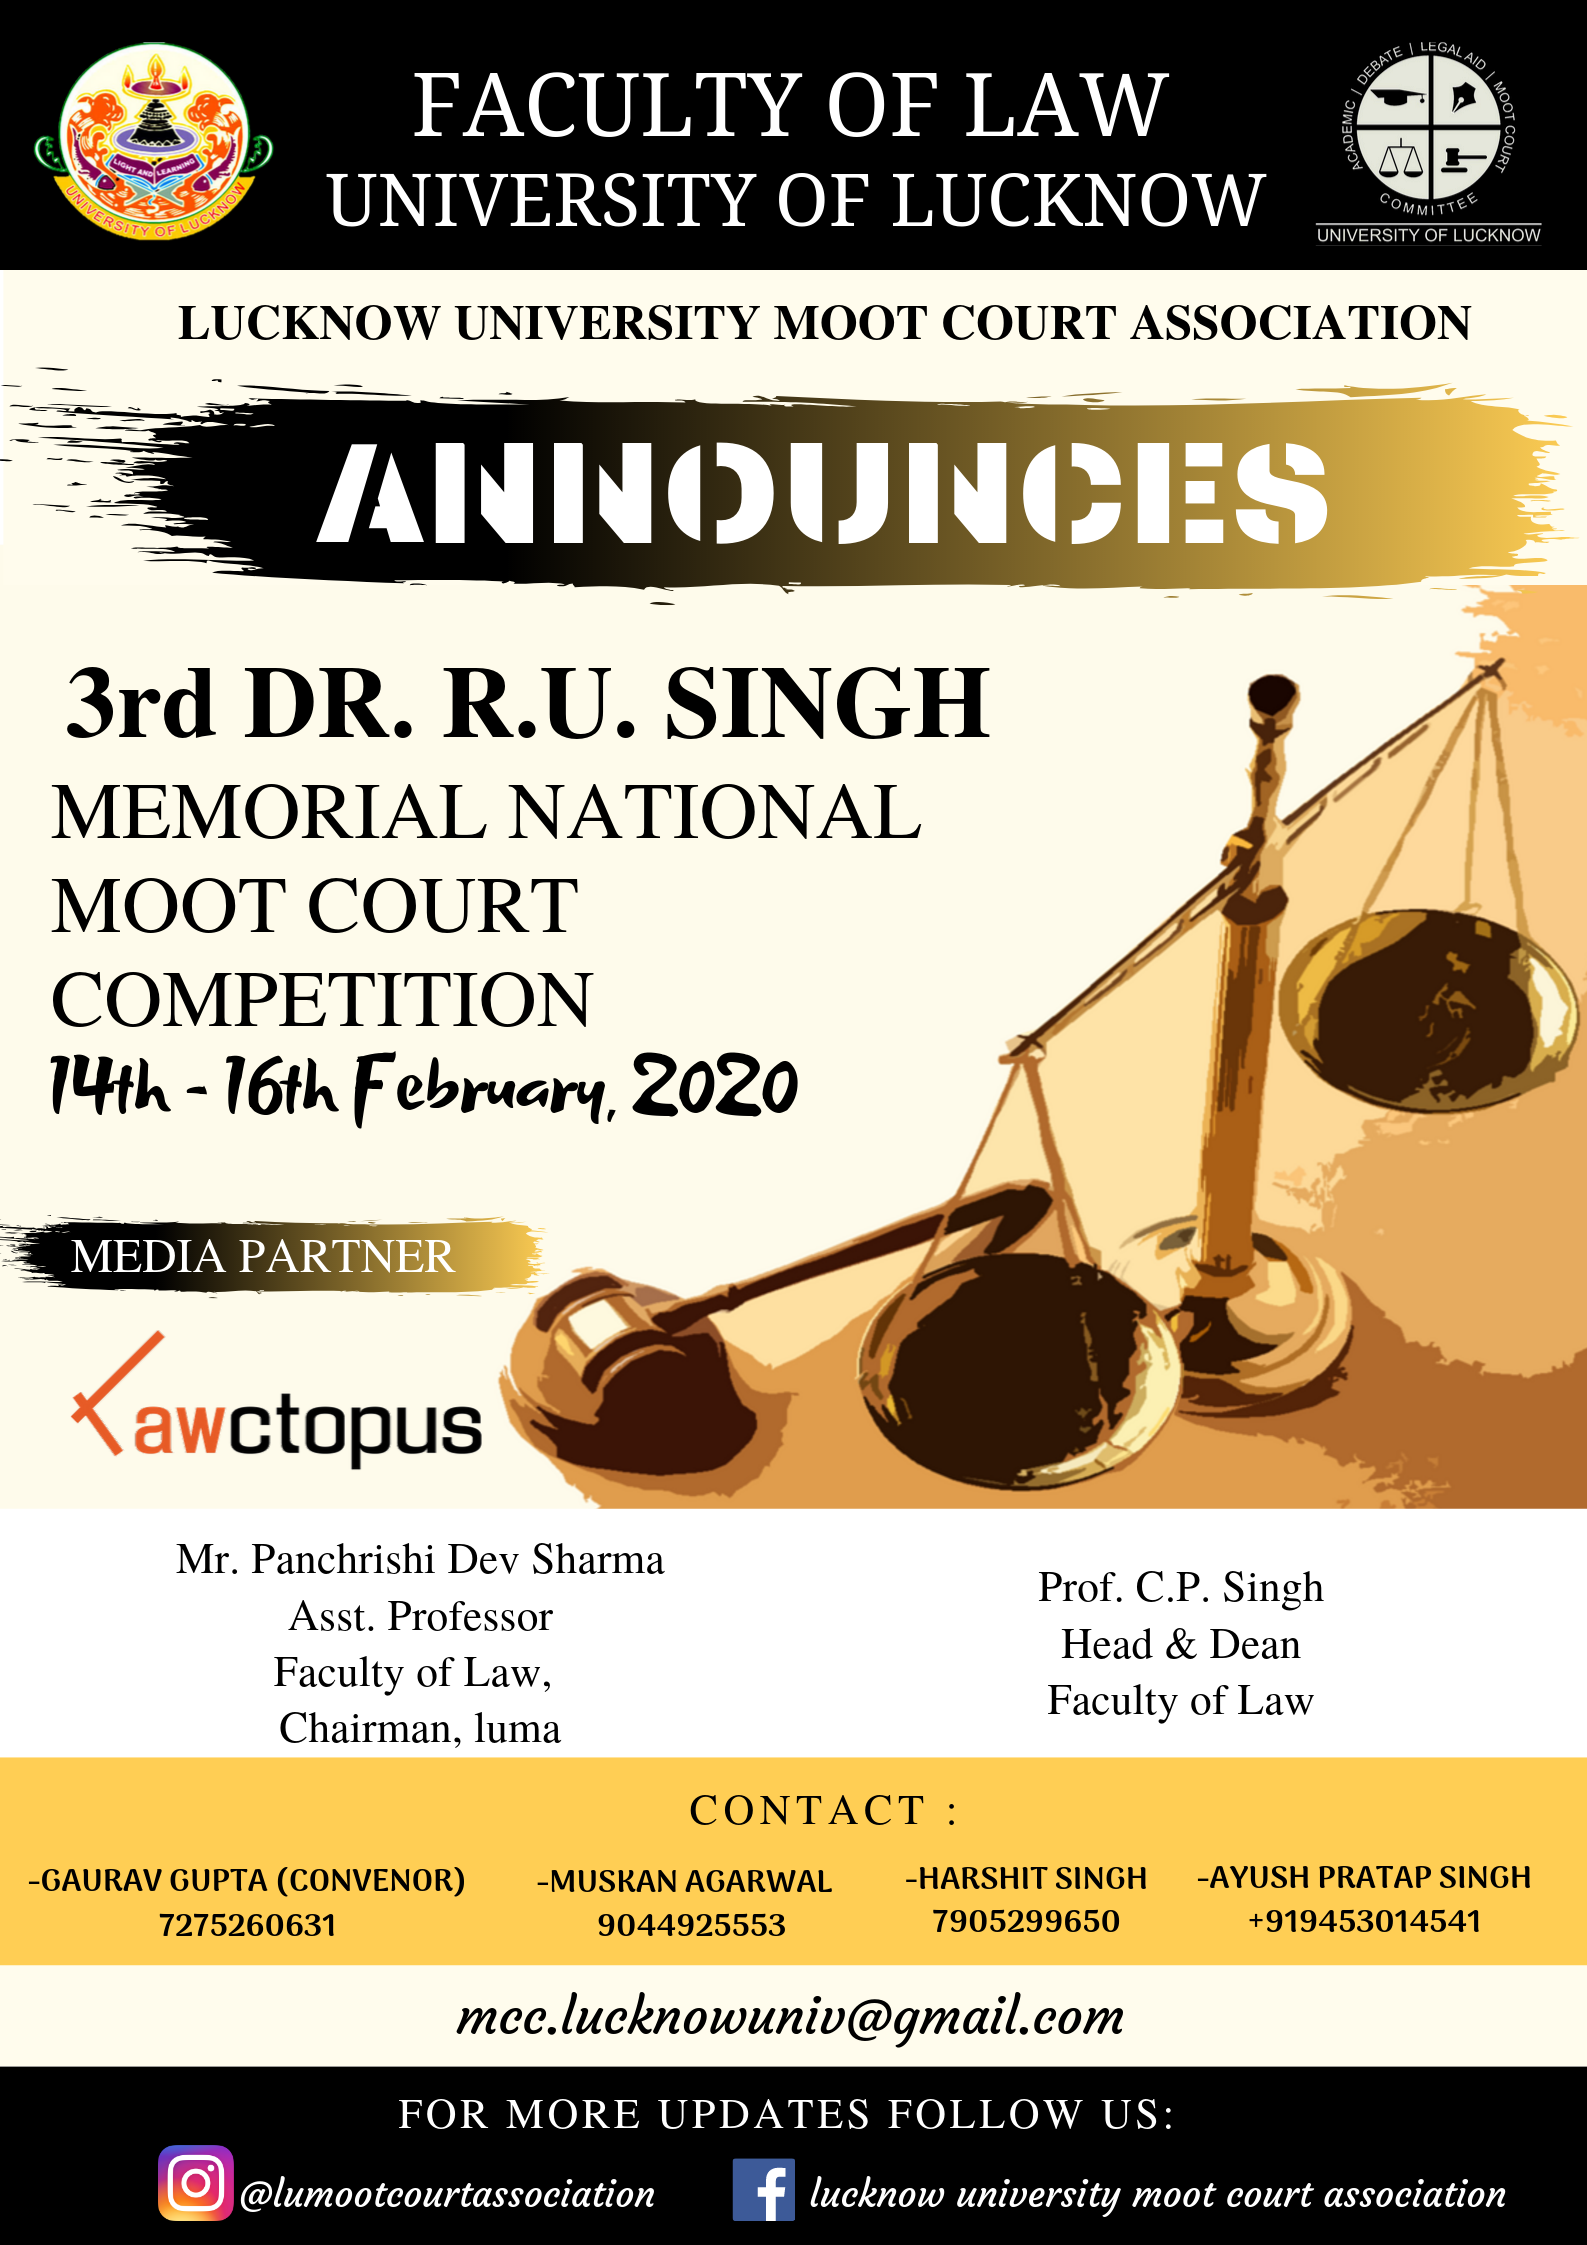 3rd Dr. R.U. Singh Memorial Moot Court Competition